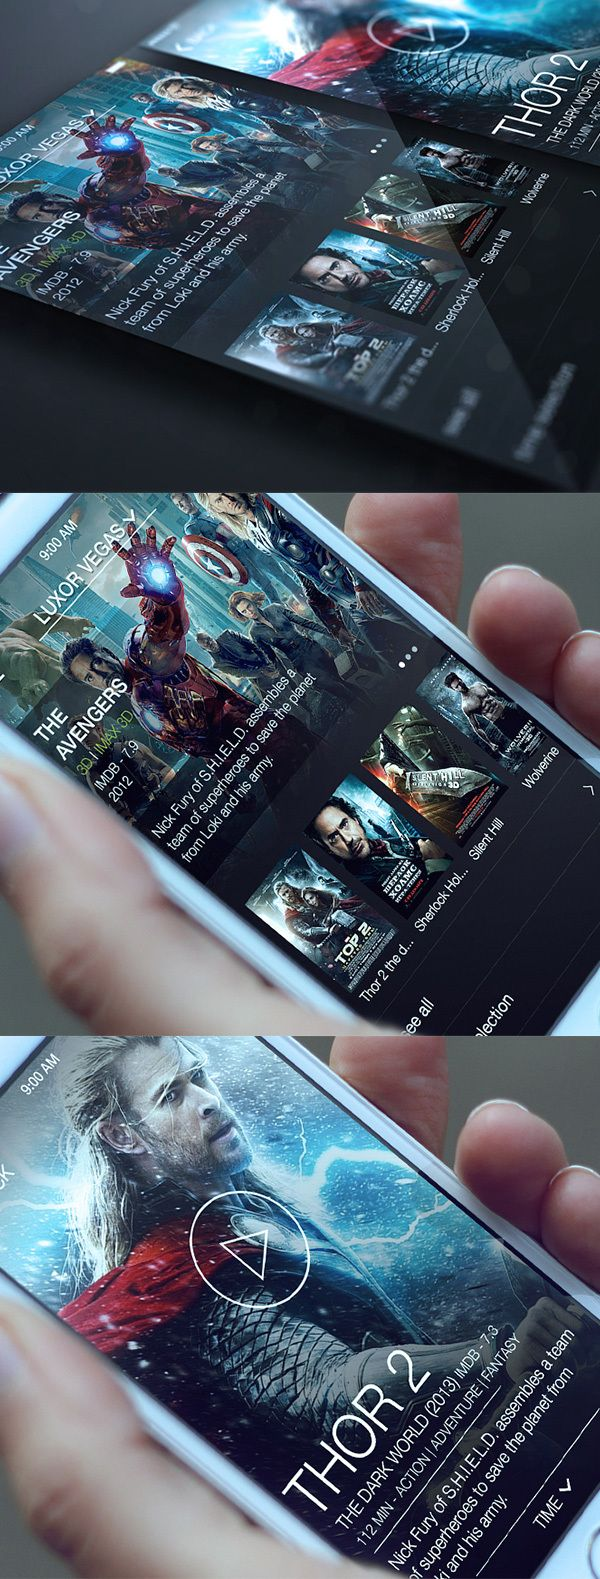 Cinema App by Alex Bender, via Behance